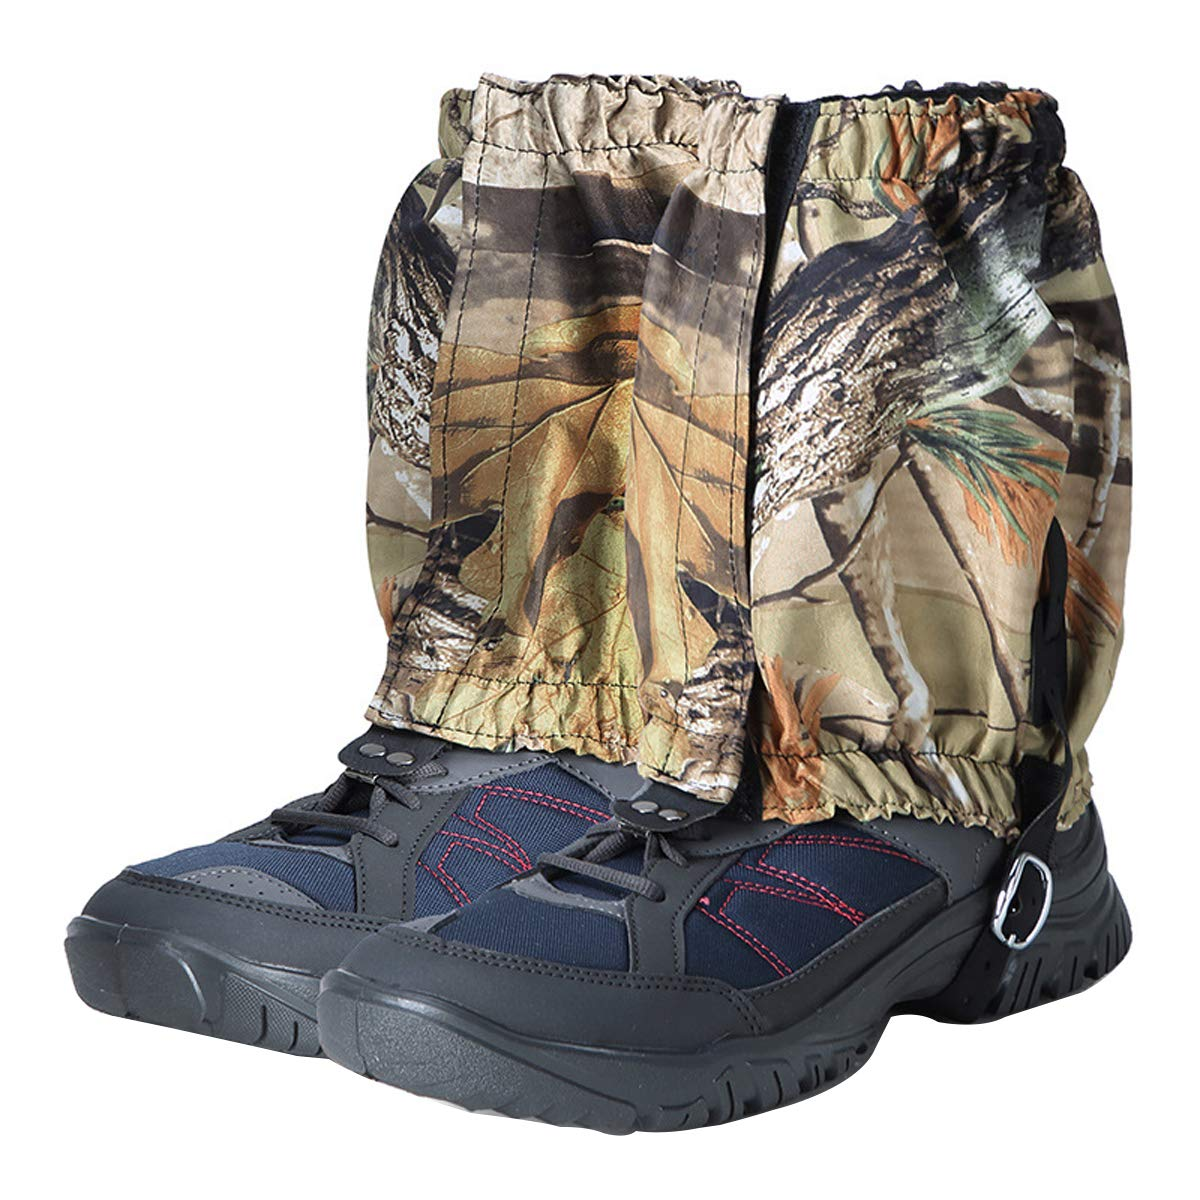 UNISTRENGH Outdoor Camouflage Waterproof Leg Shoes Gaiters Breathable Legging Cover Snow Boot Gaiter for Mountain Exploration Hiking Climbing Hunting (2019New Short-Style Dead-Leaf Camouflage)